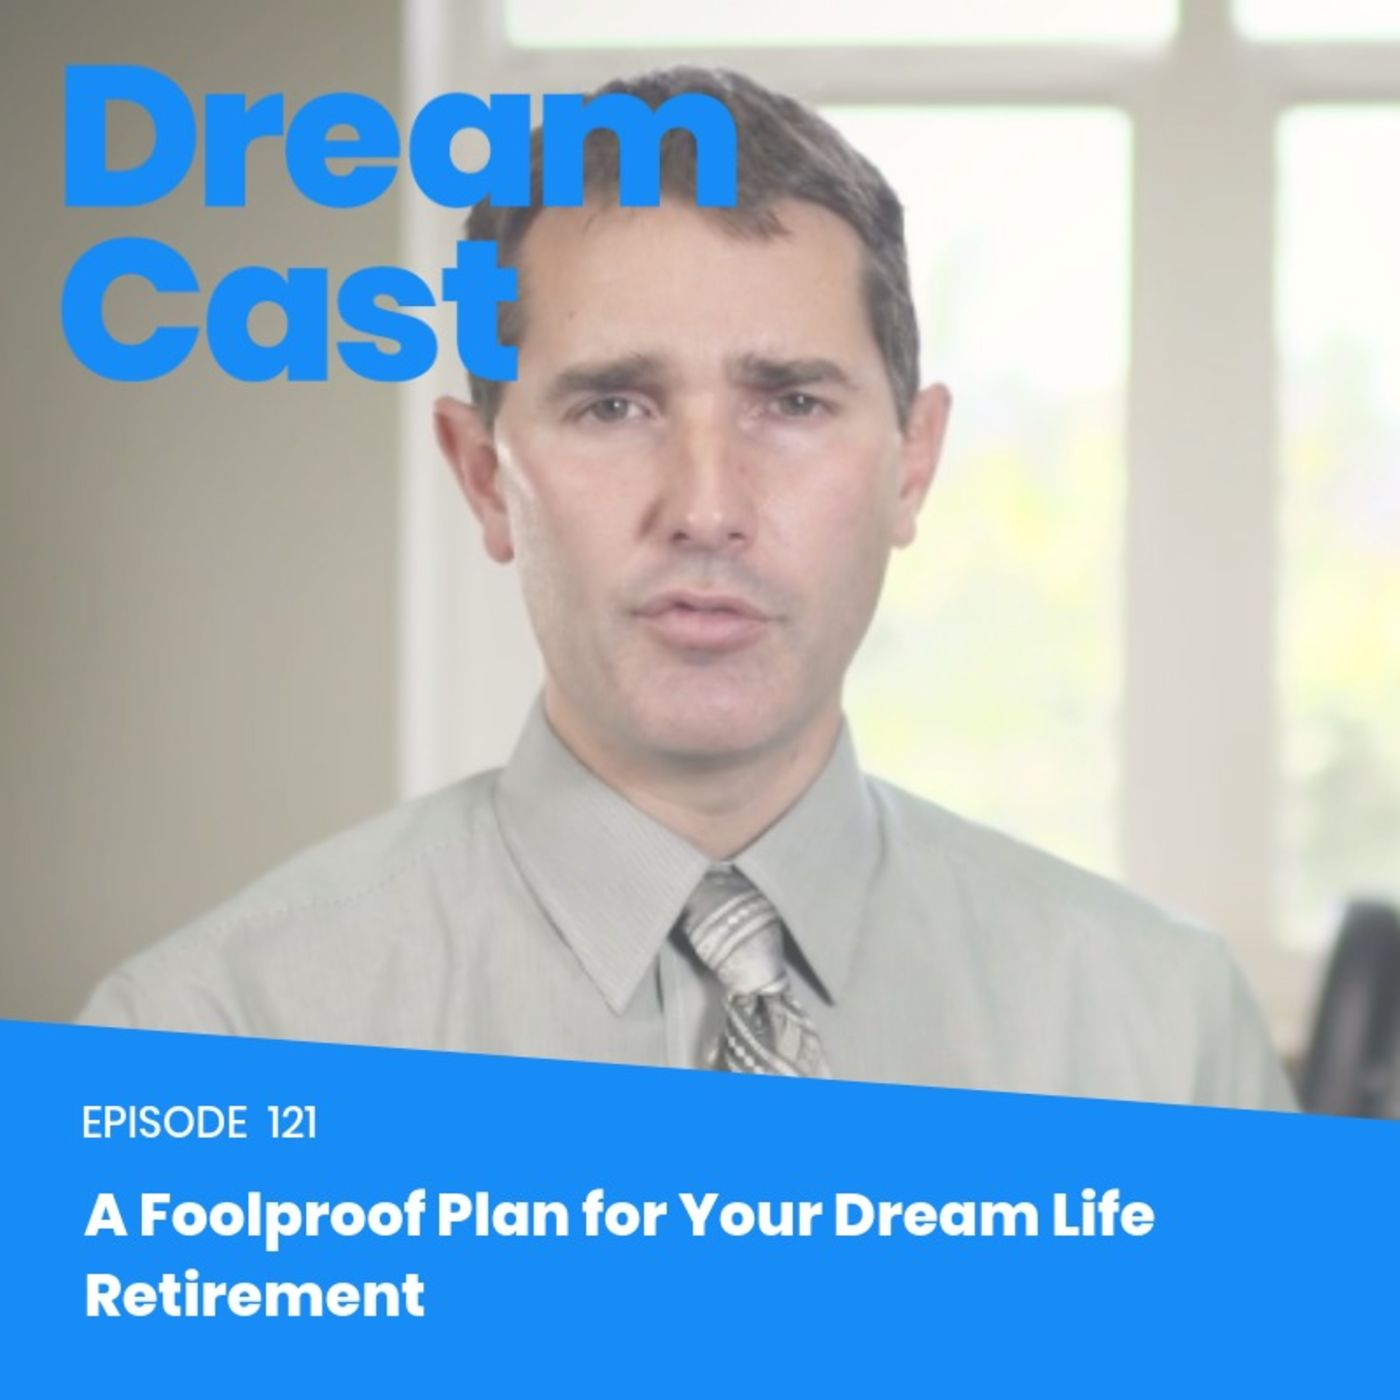 Episode 121 - A Foolproof Plan for Your Dream Life Retirement